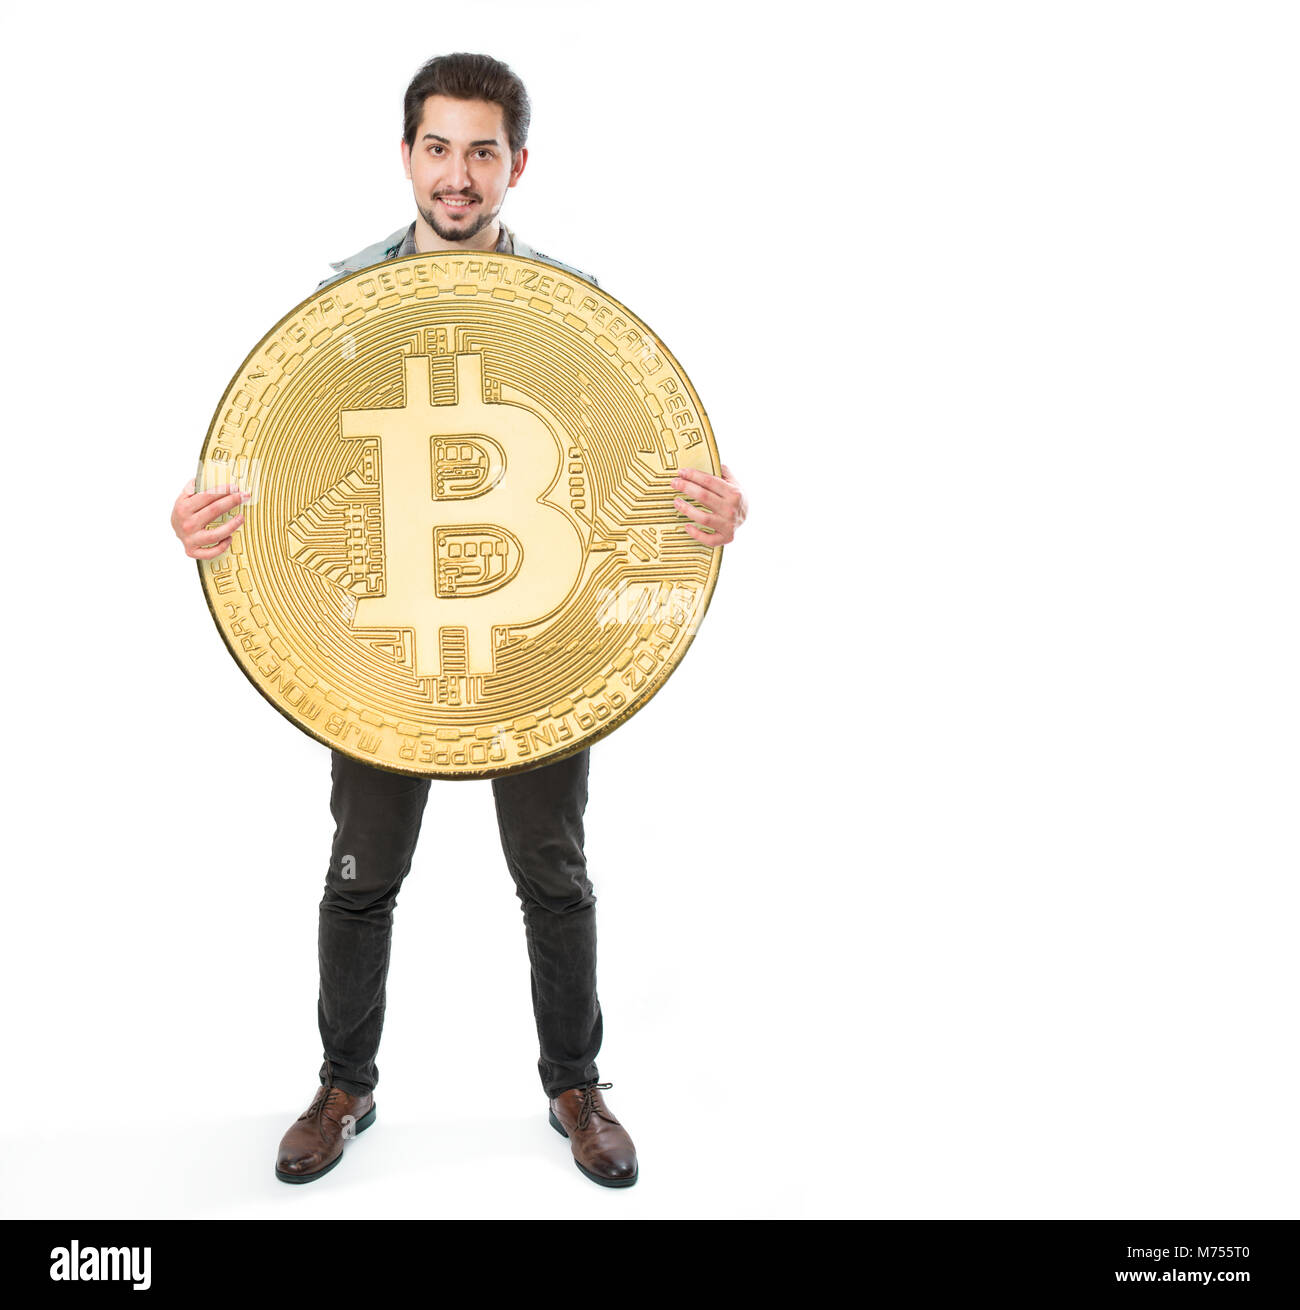 A cheerful man on a white background holding a huge bitcoin coin - Stock Image